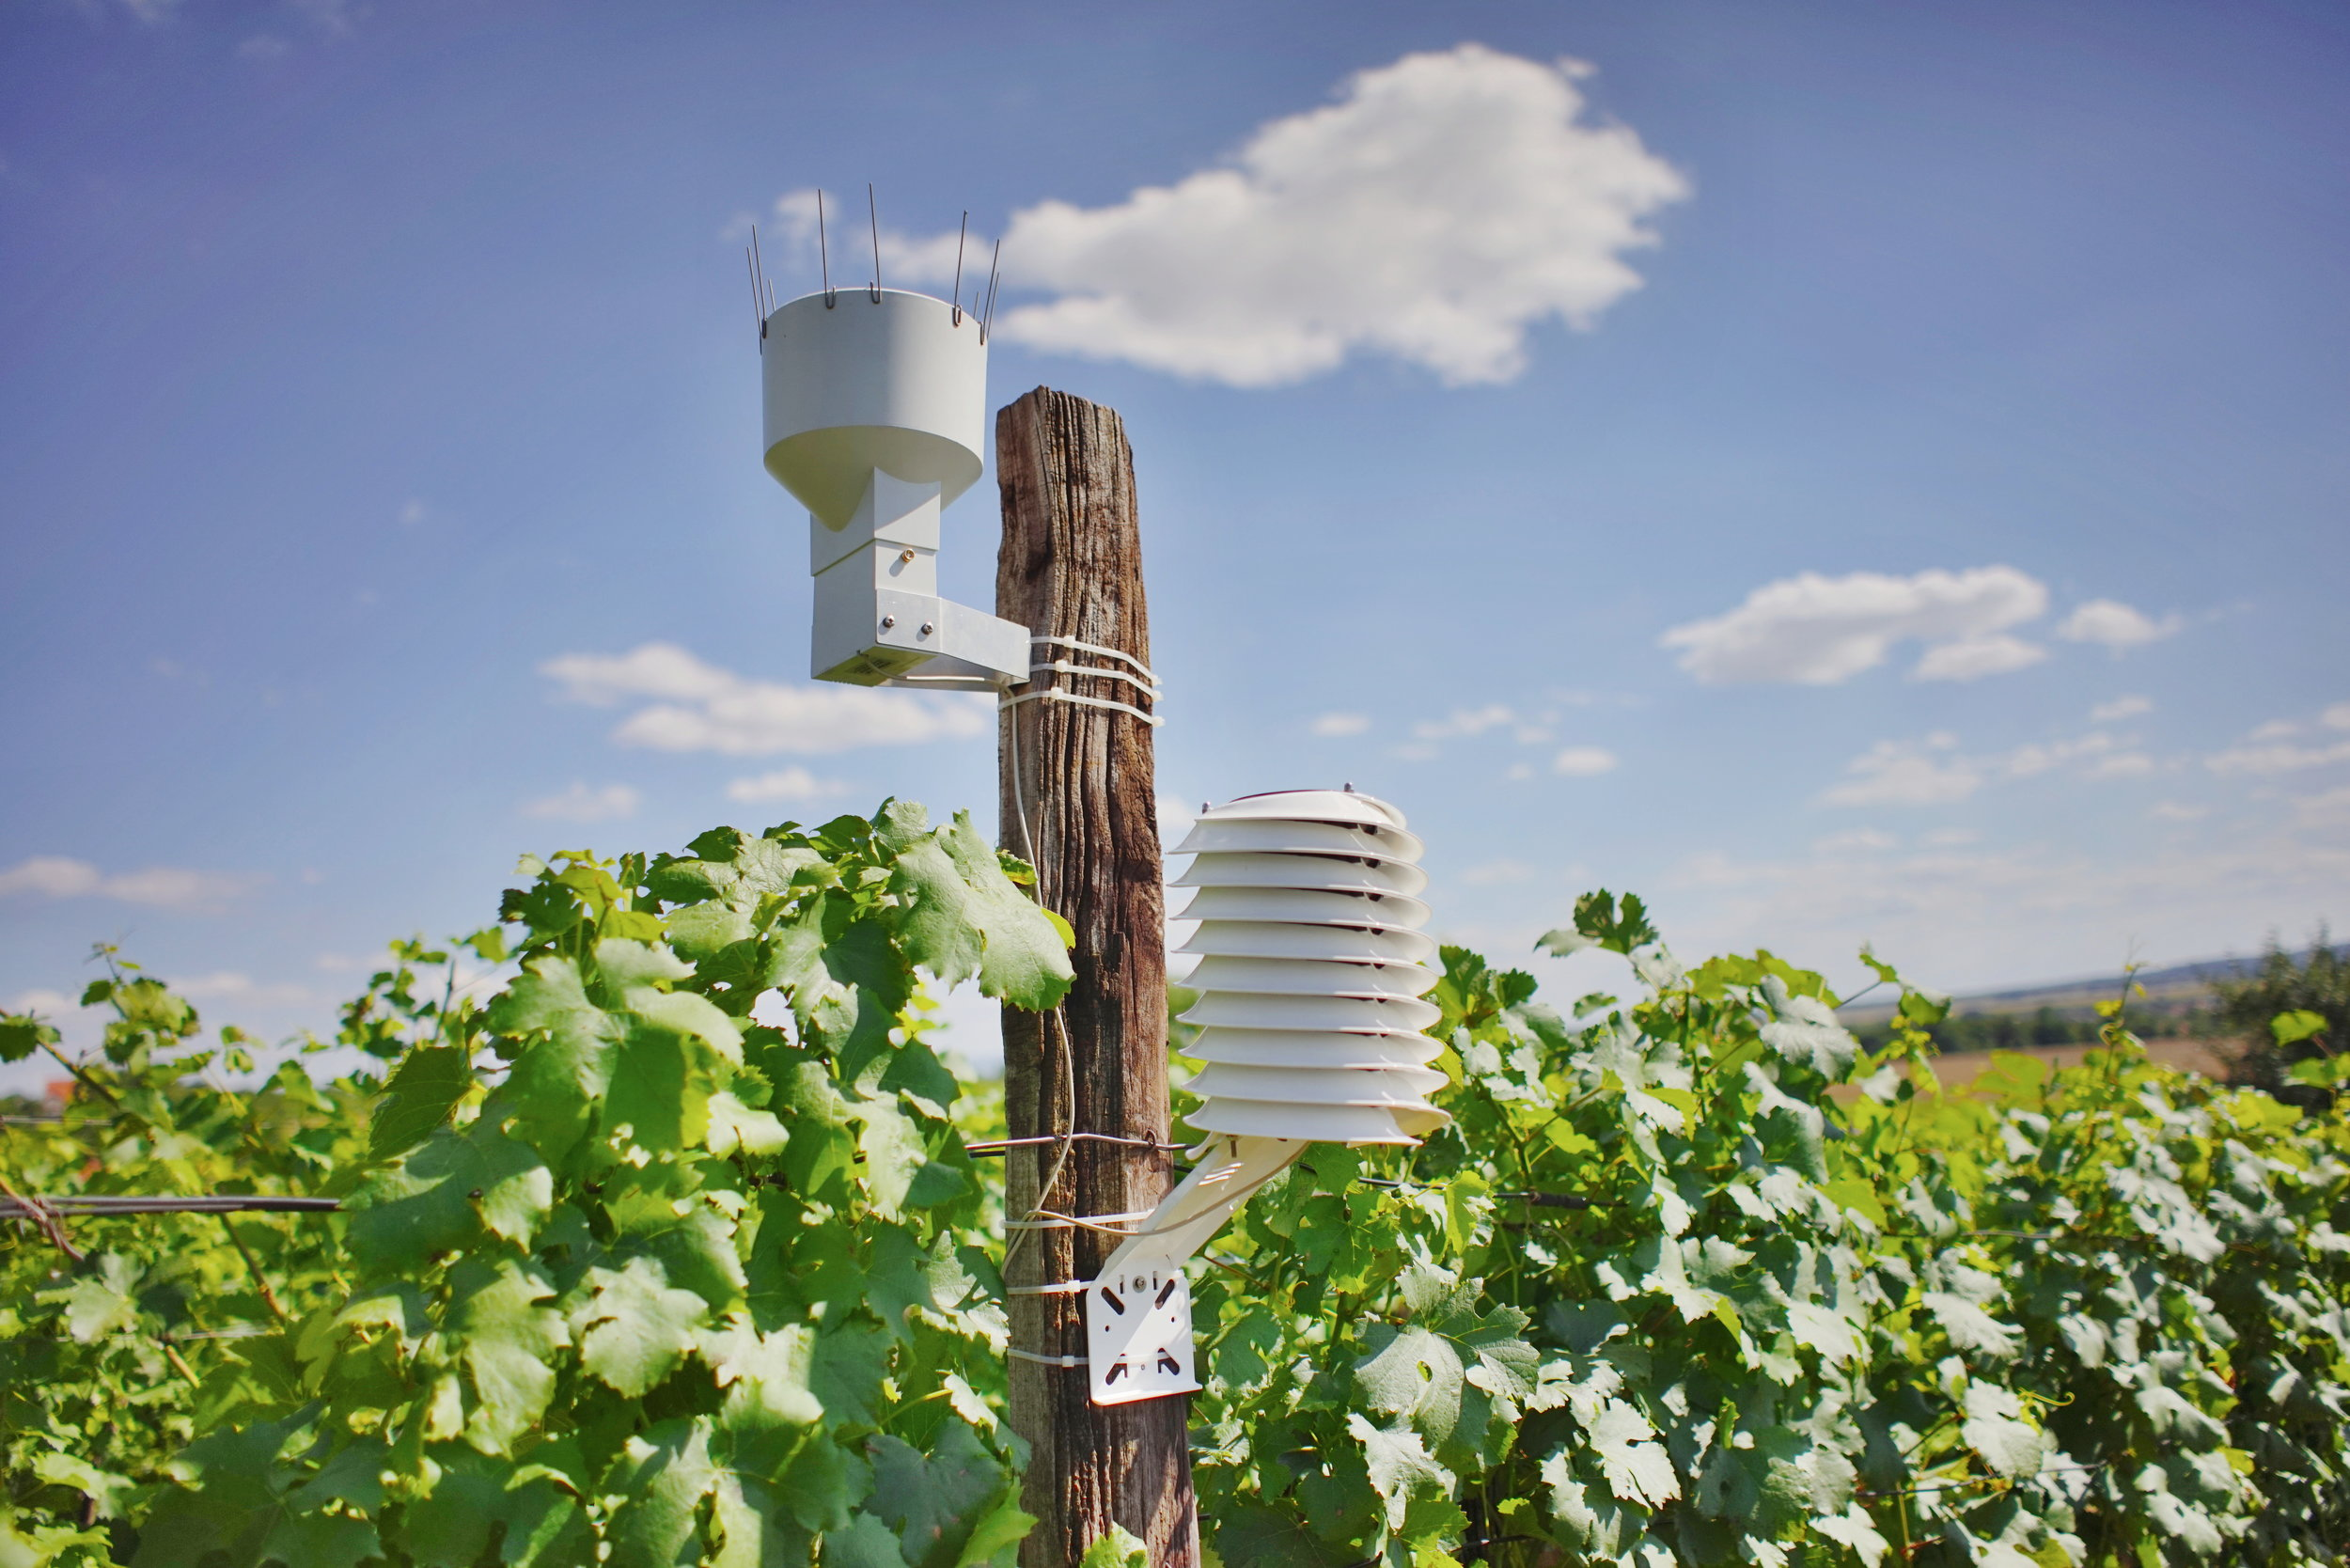 MeteoHelix IoT Pro weather station and rain gauge at a wine yard